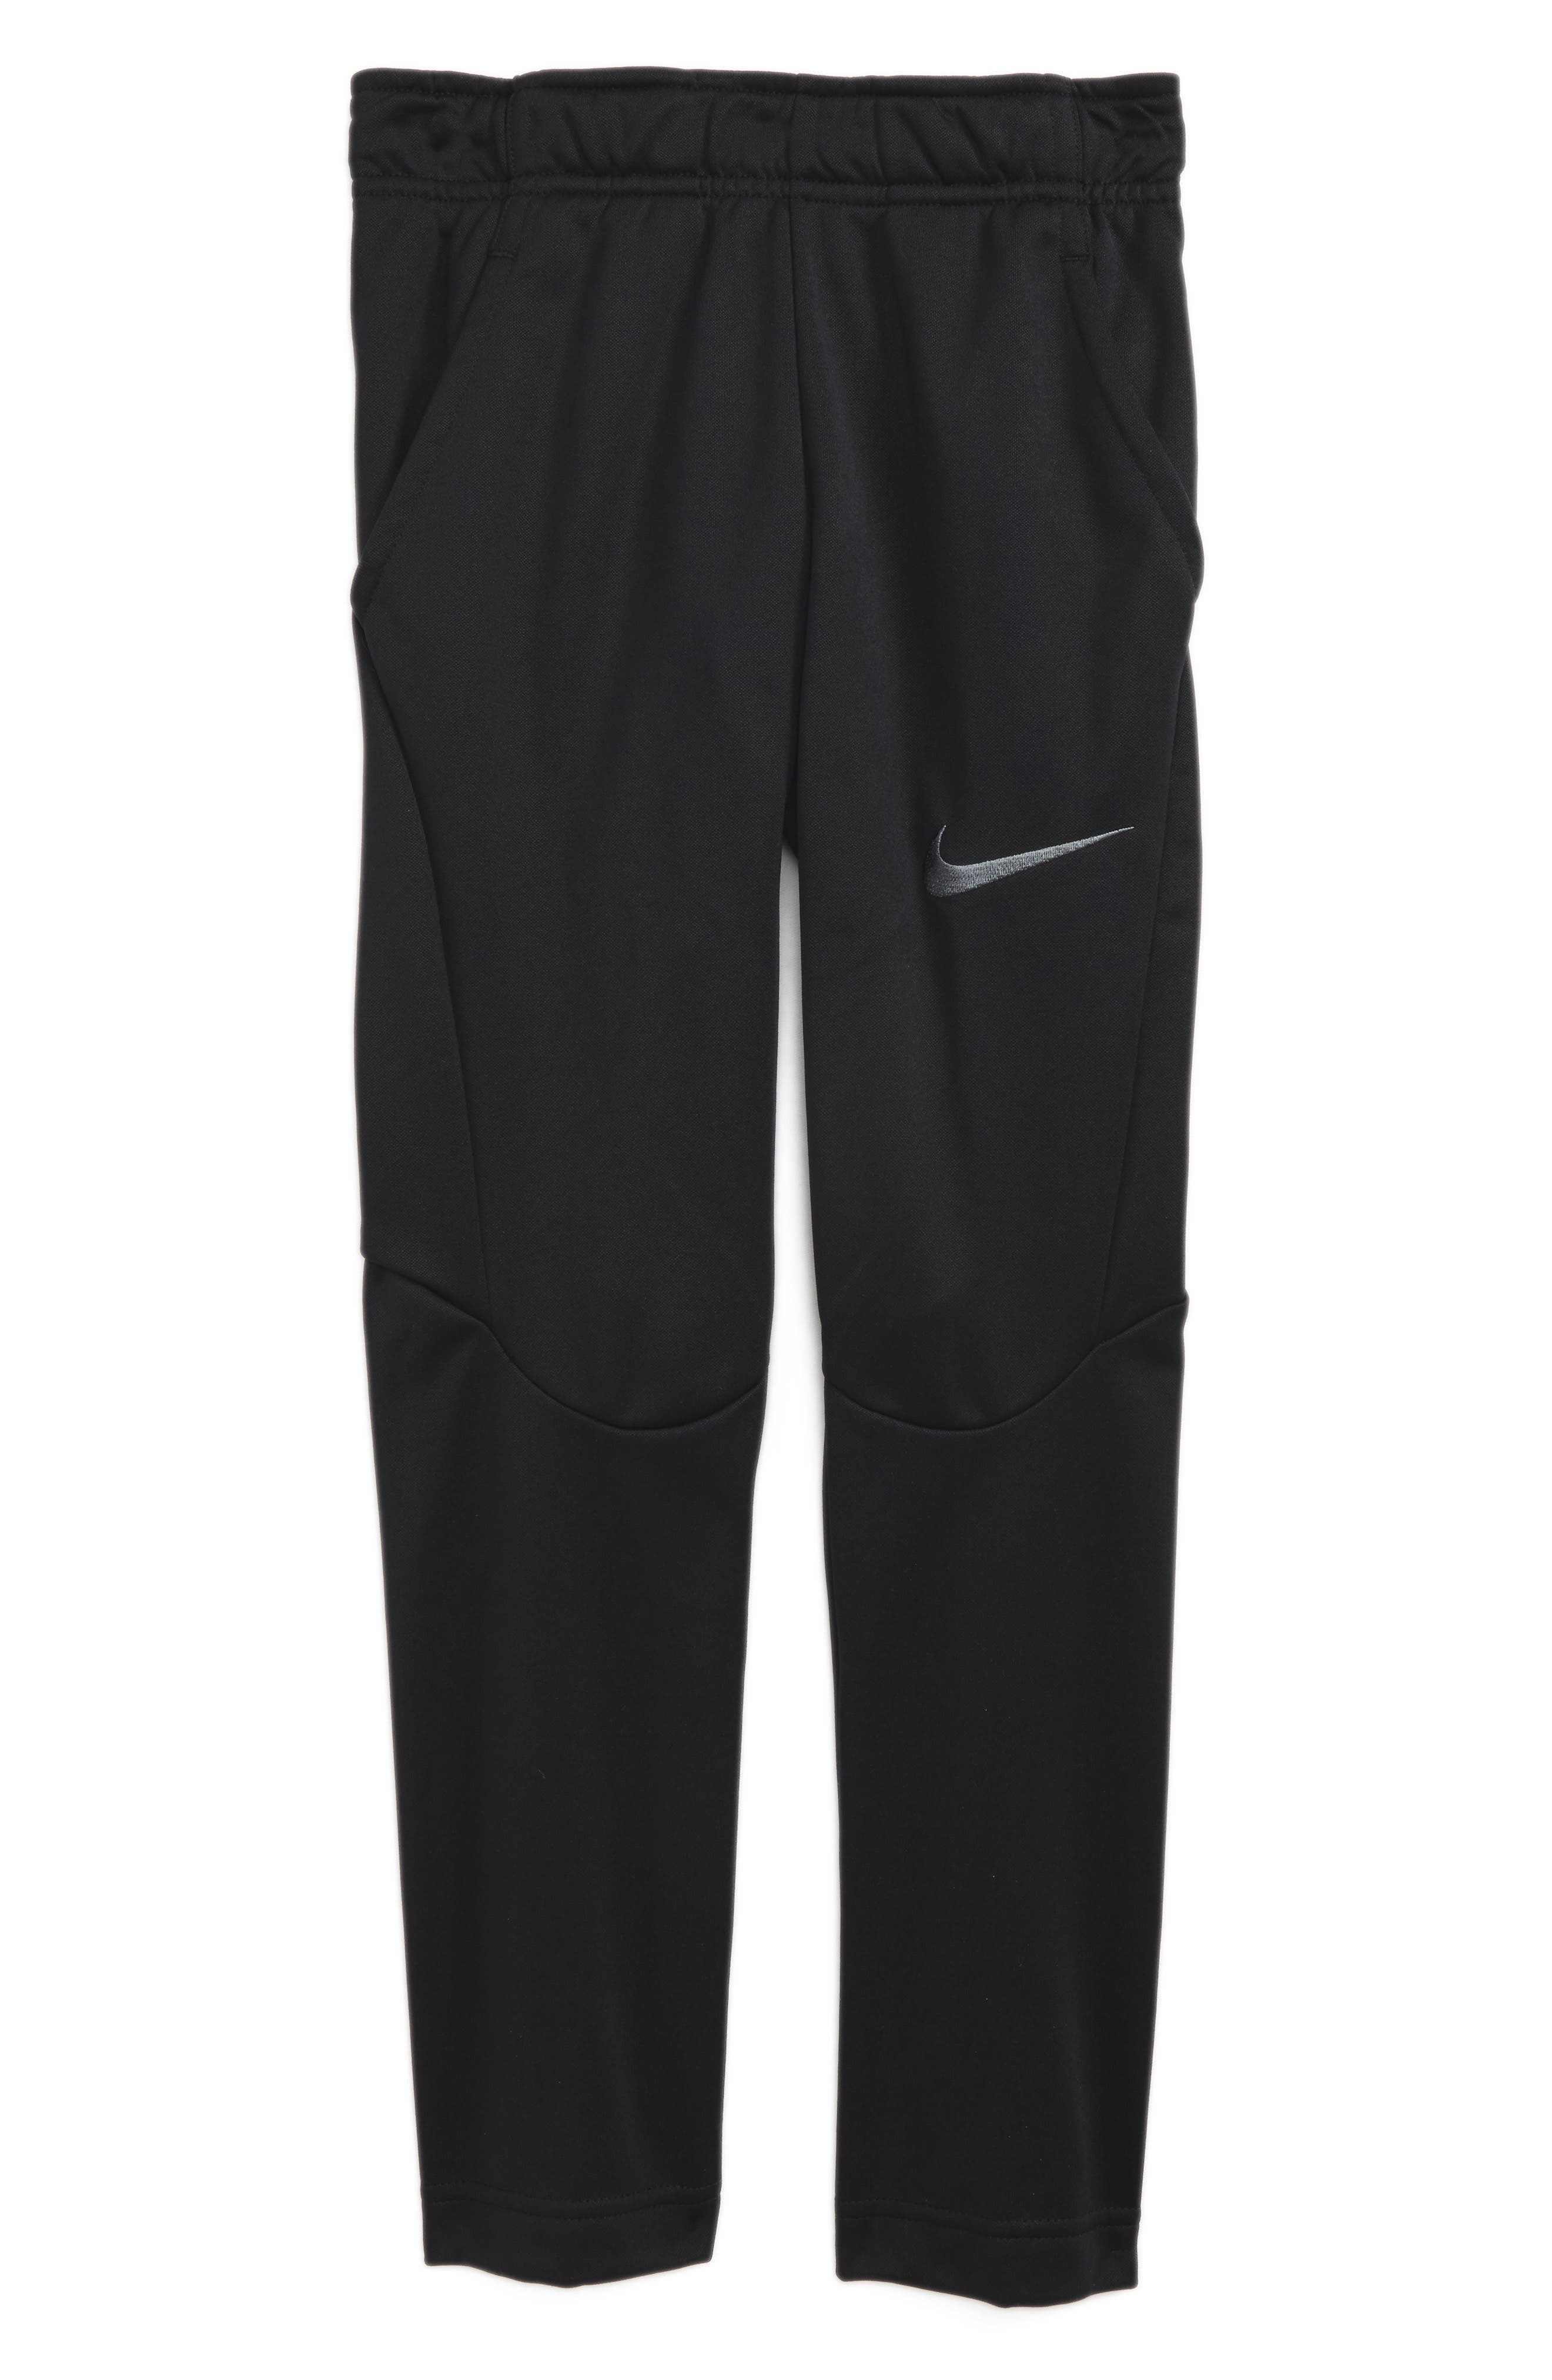 Therma-FIT Training Pants,                             Alternate thumbnail 8, color,